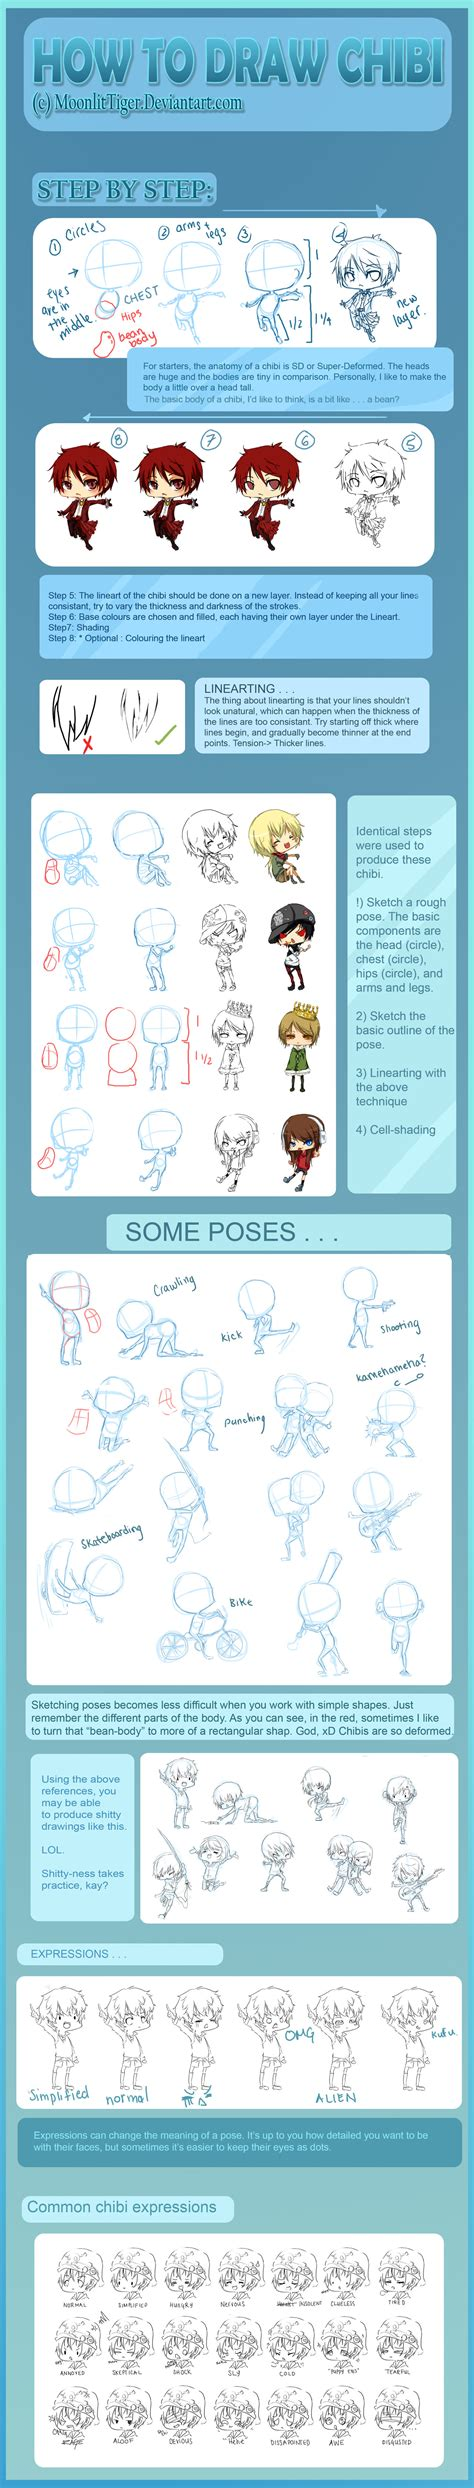 tutorial html blogger animax action how to draw chibi